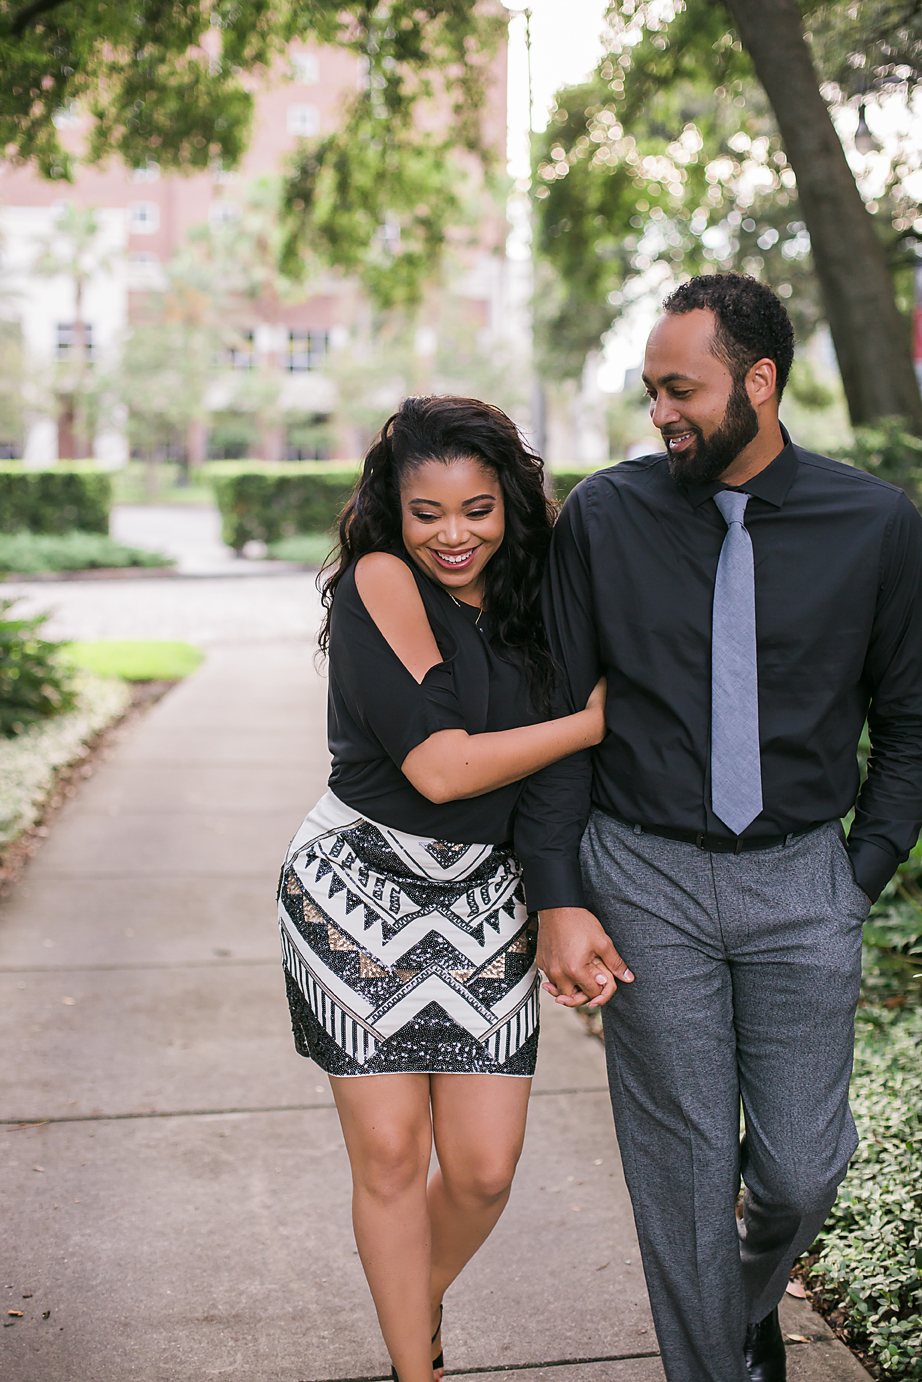 Vania + Justin - Tampa Engagement Photographer - University of Tampa Engagement Photography - Preview Photos - Emily & Co. Photography (1).jpg